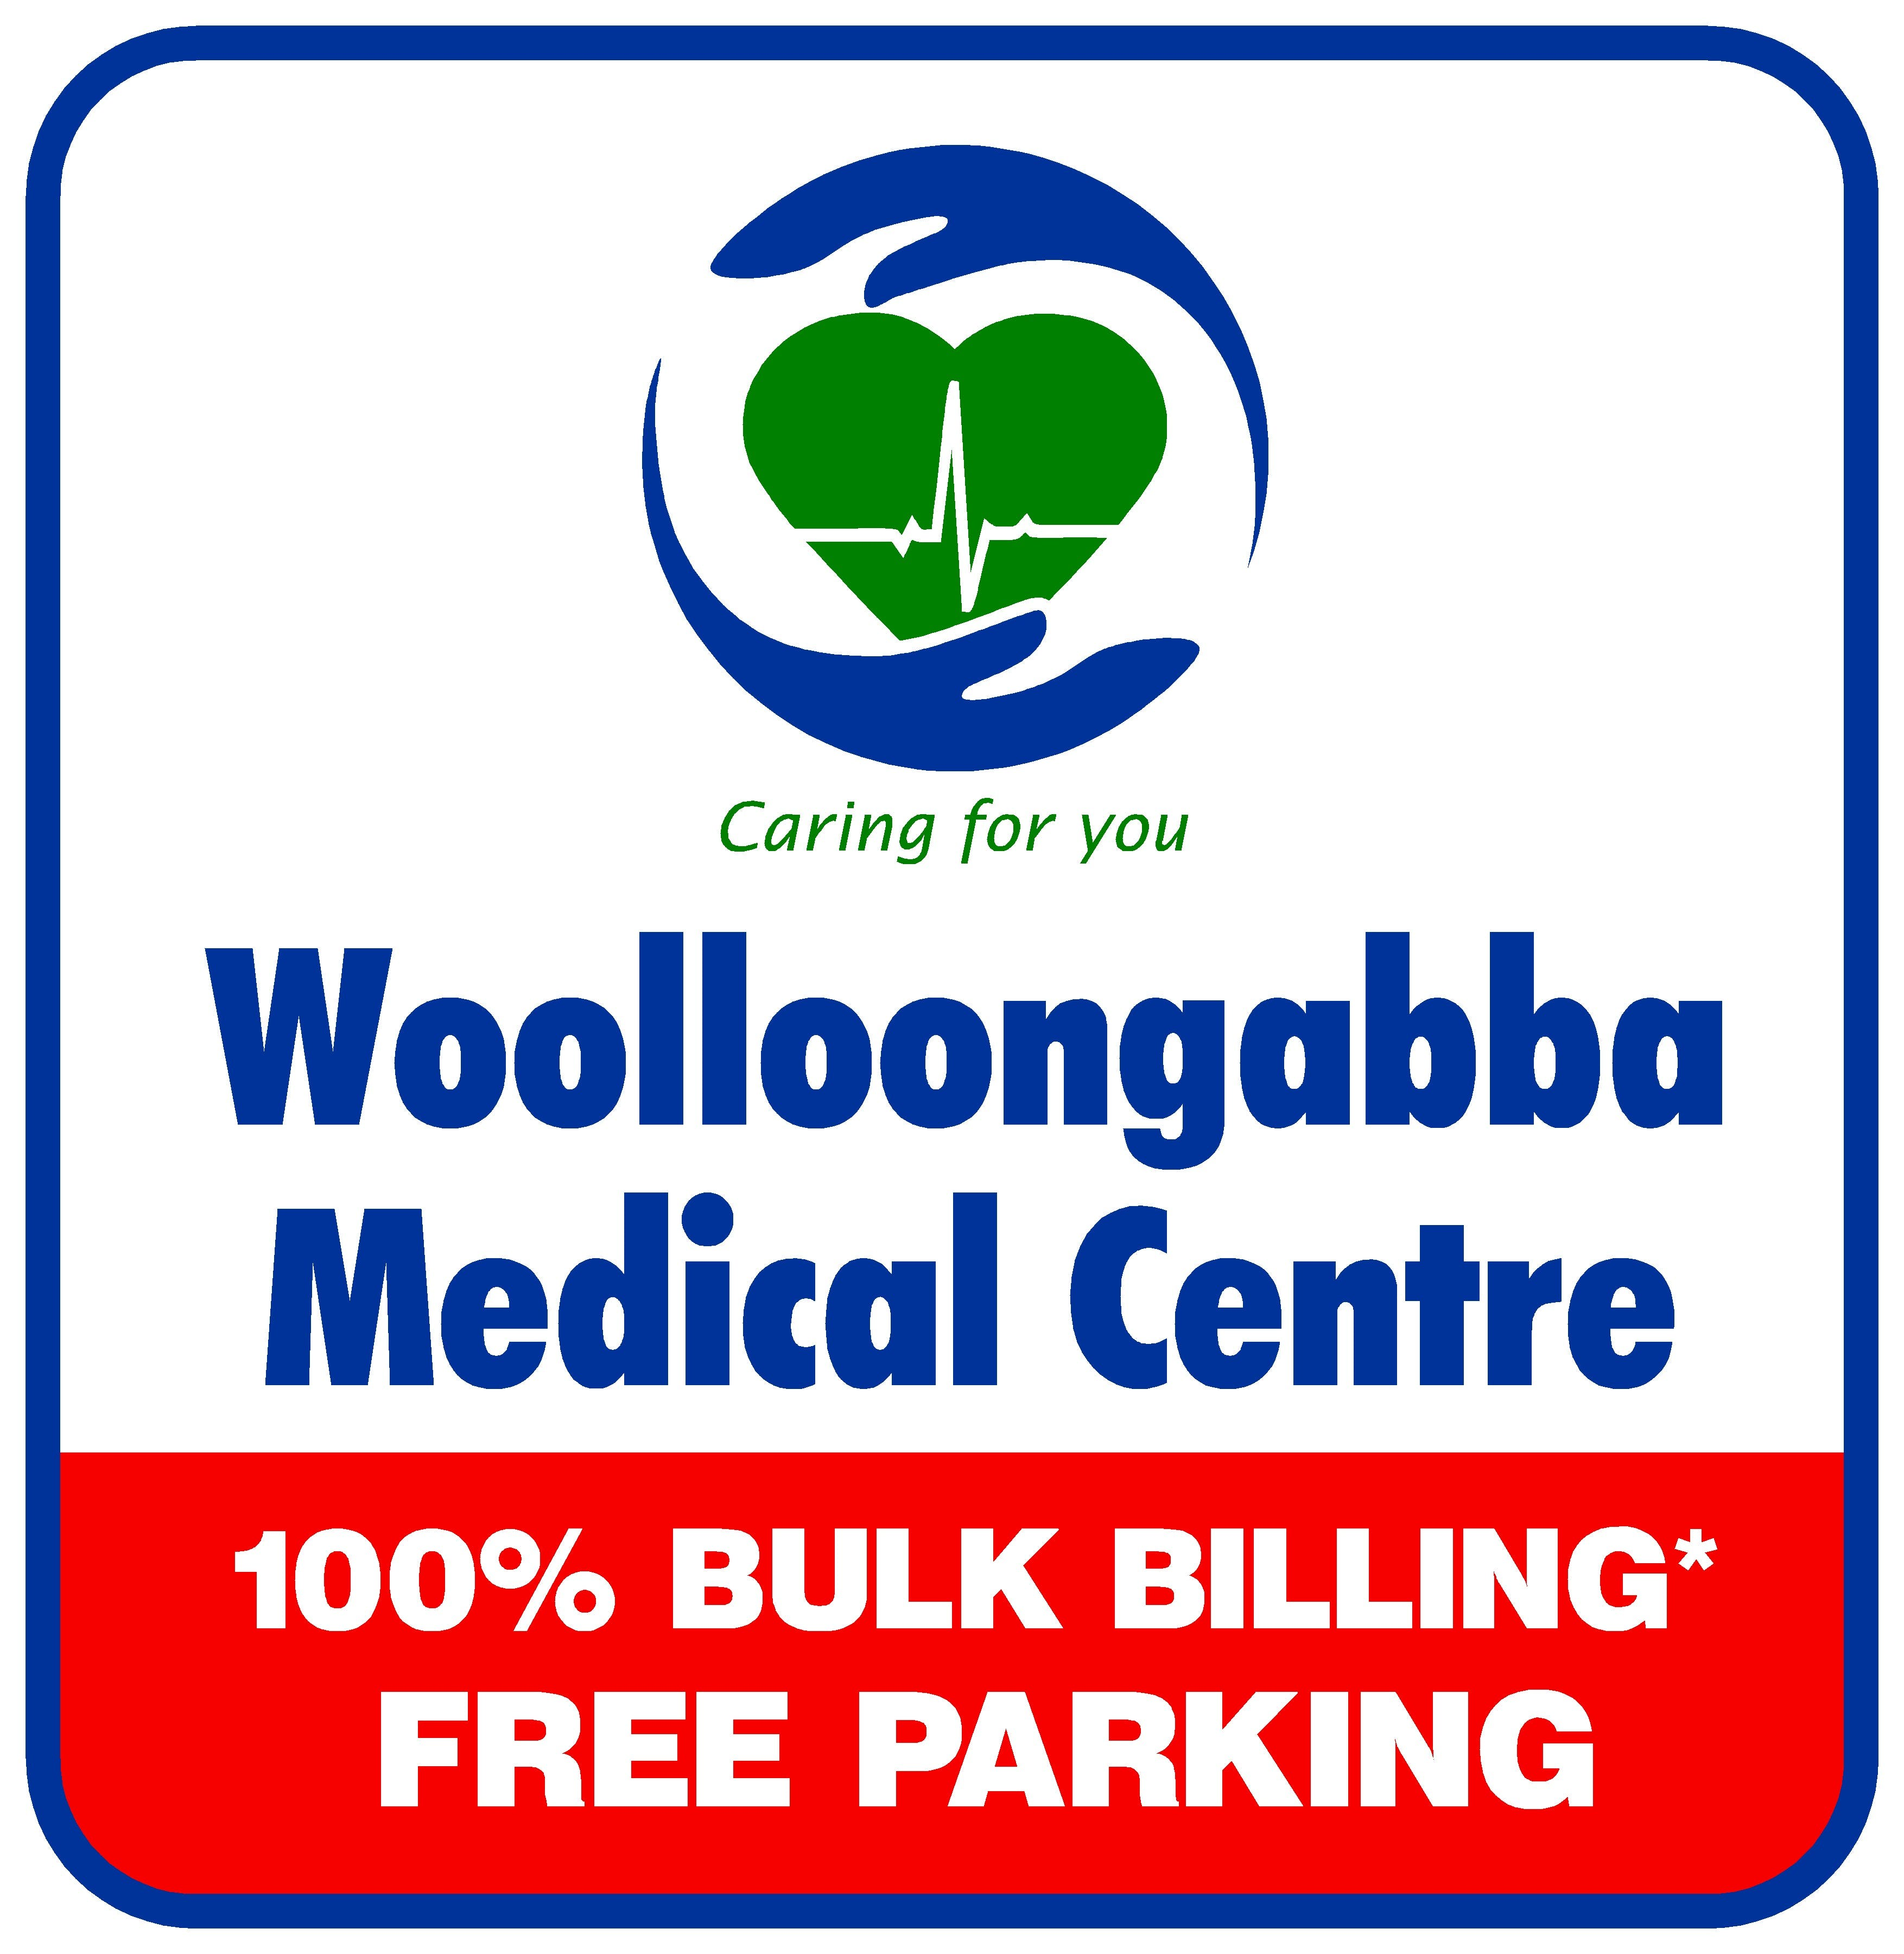 Woolloongabba Medical Centre Logo